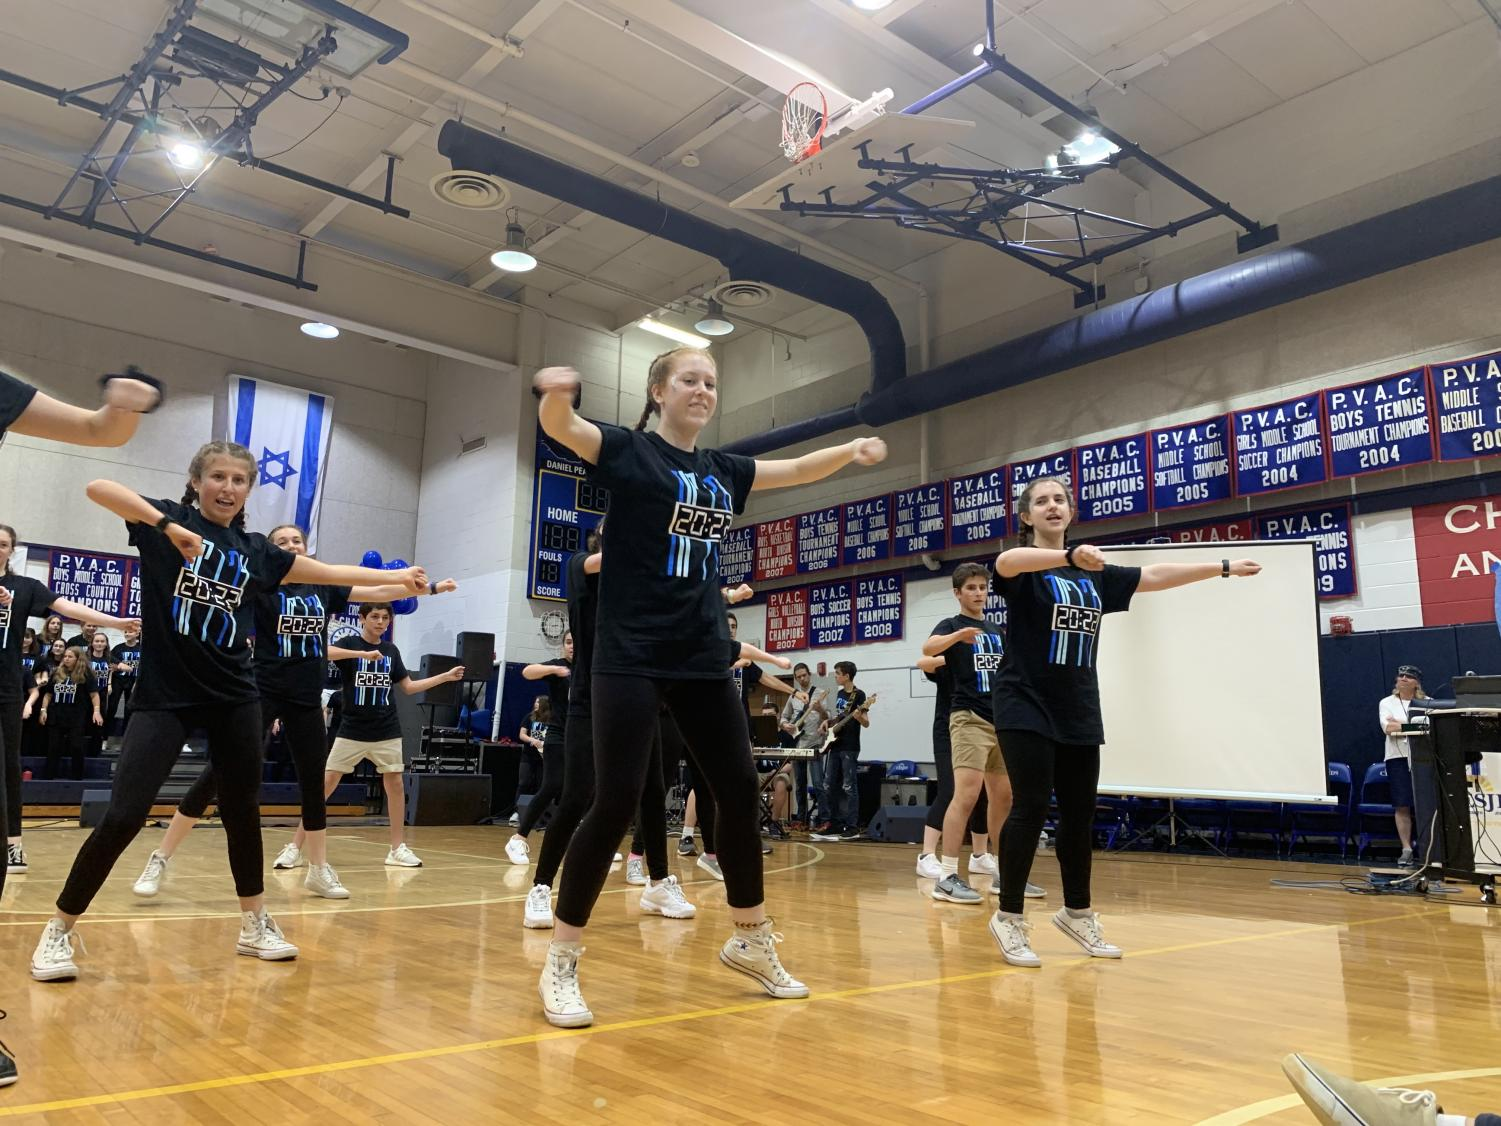 Freshman+Zoe+Wertlieb+dances+with+the+rest+of+the+freshmen+dancers+during+their+performance.+%E2%80%9CAlthough+it+is+stressful+leading+up+to+Zimriyah%2C+performing+next+to+your+friends+is+incredibly+rewarding%2C%E2%80%9D+Wertlieb+said.+